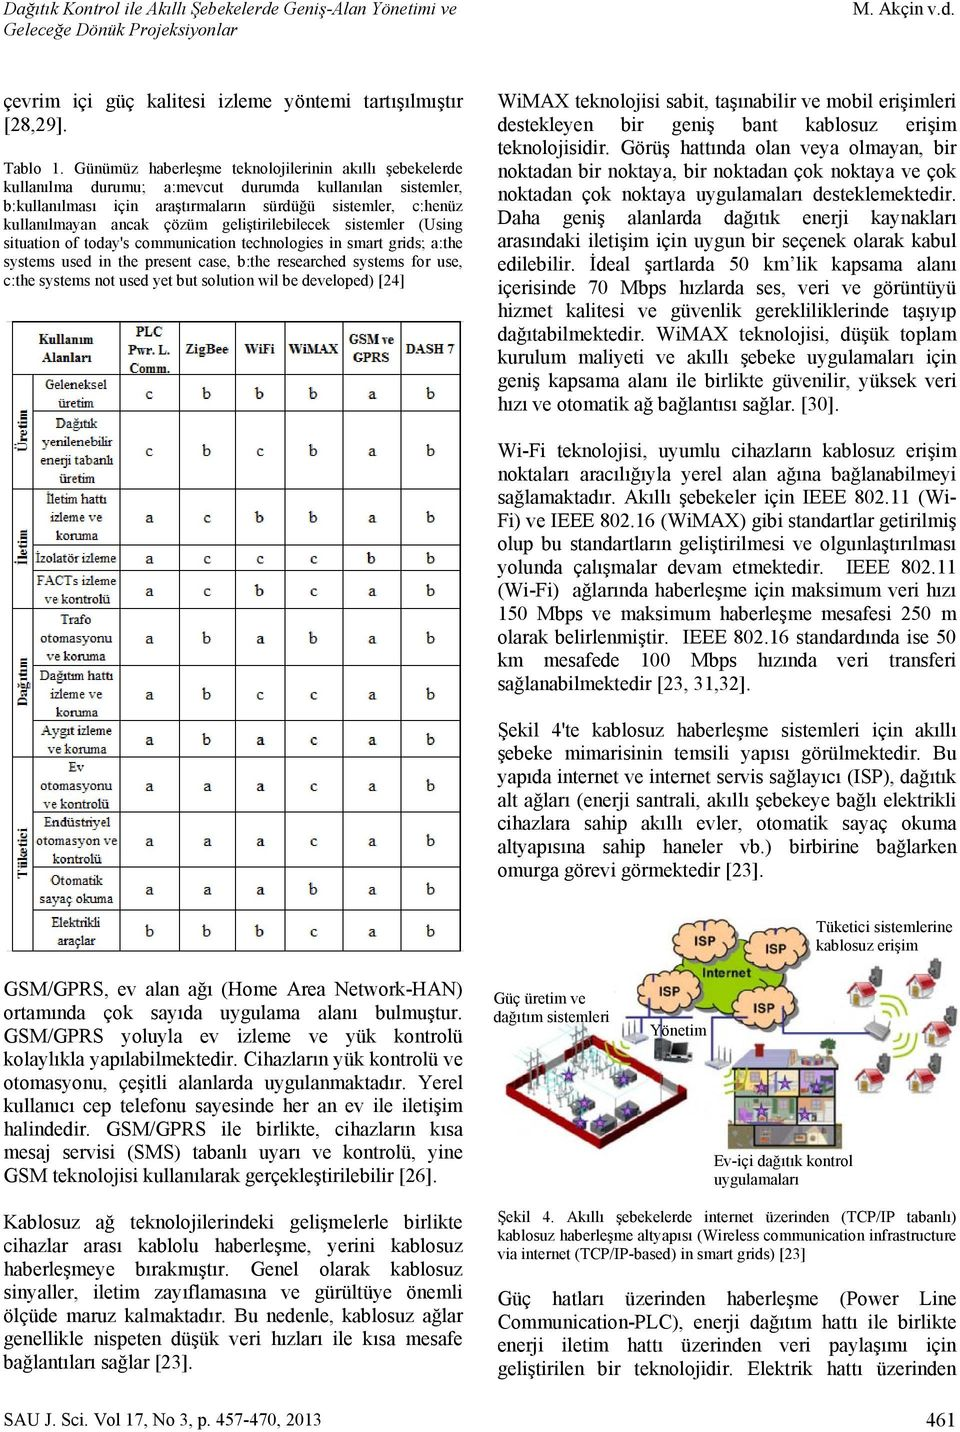 çözüm geliştirilebilecek sistemler (Using situation of today's communication technologies in smart grids; a:the systems used in the present case, b:the researched systems for use, c:the systems not